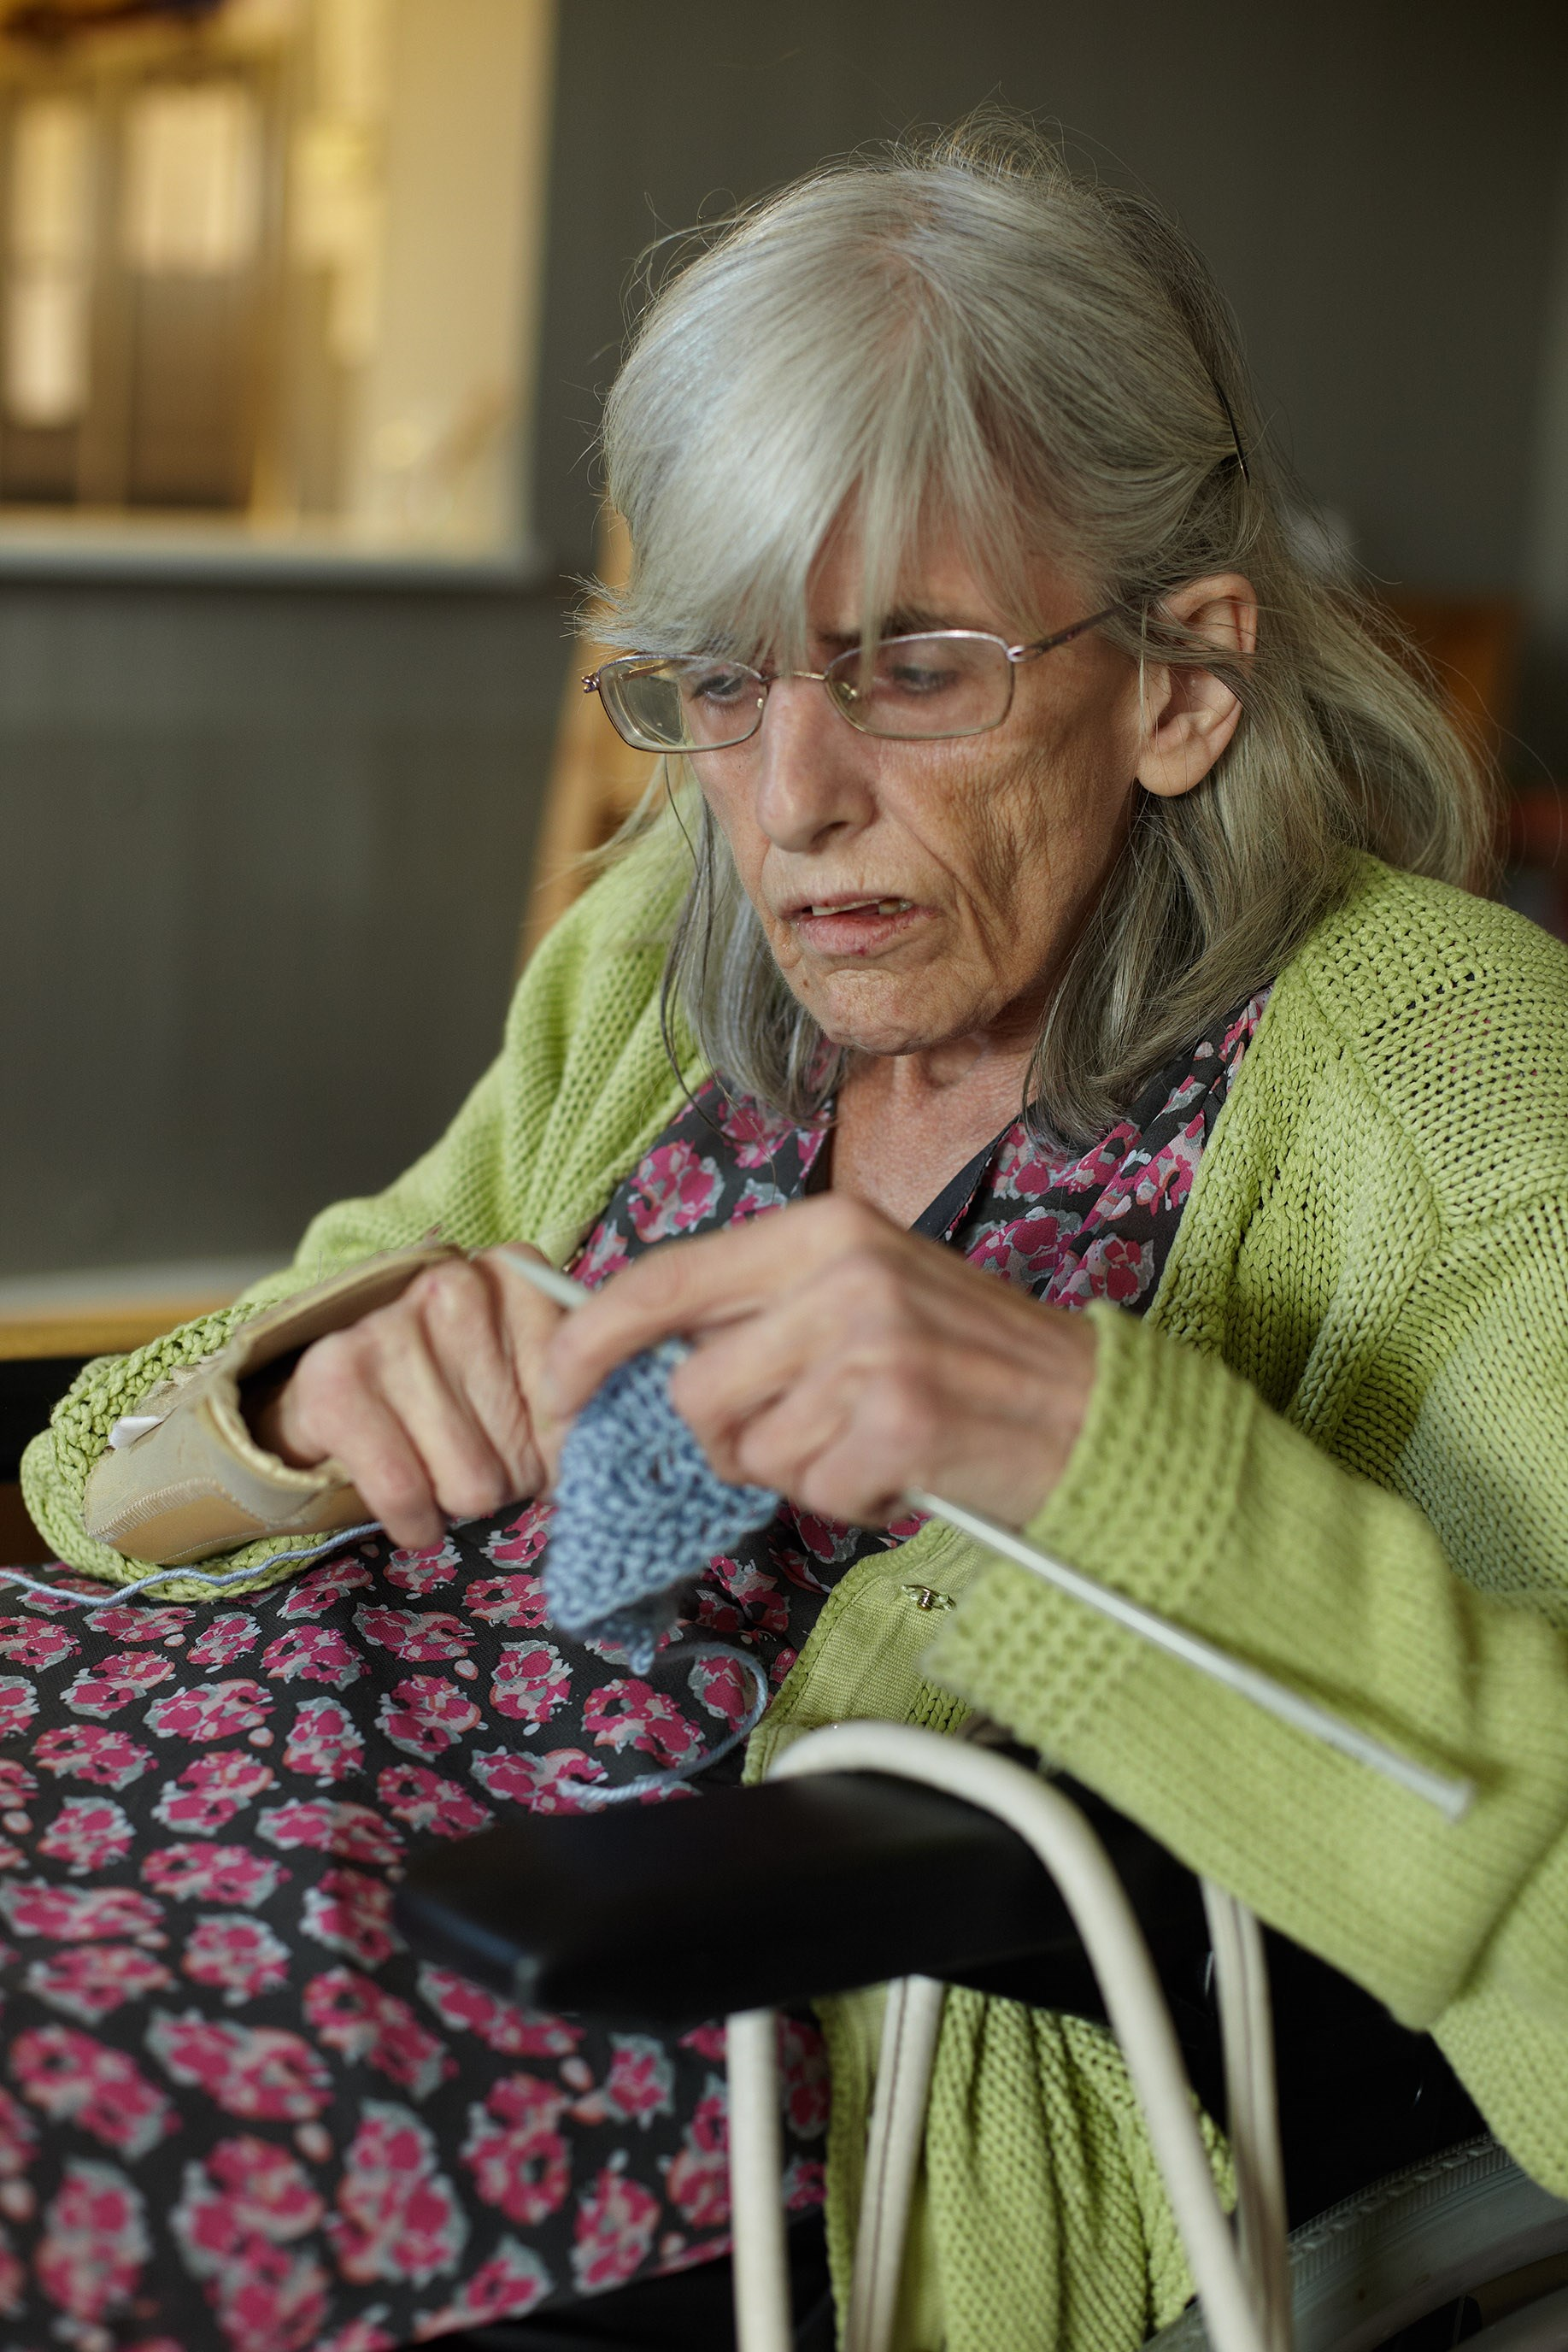 Gregory Court service user knitting